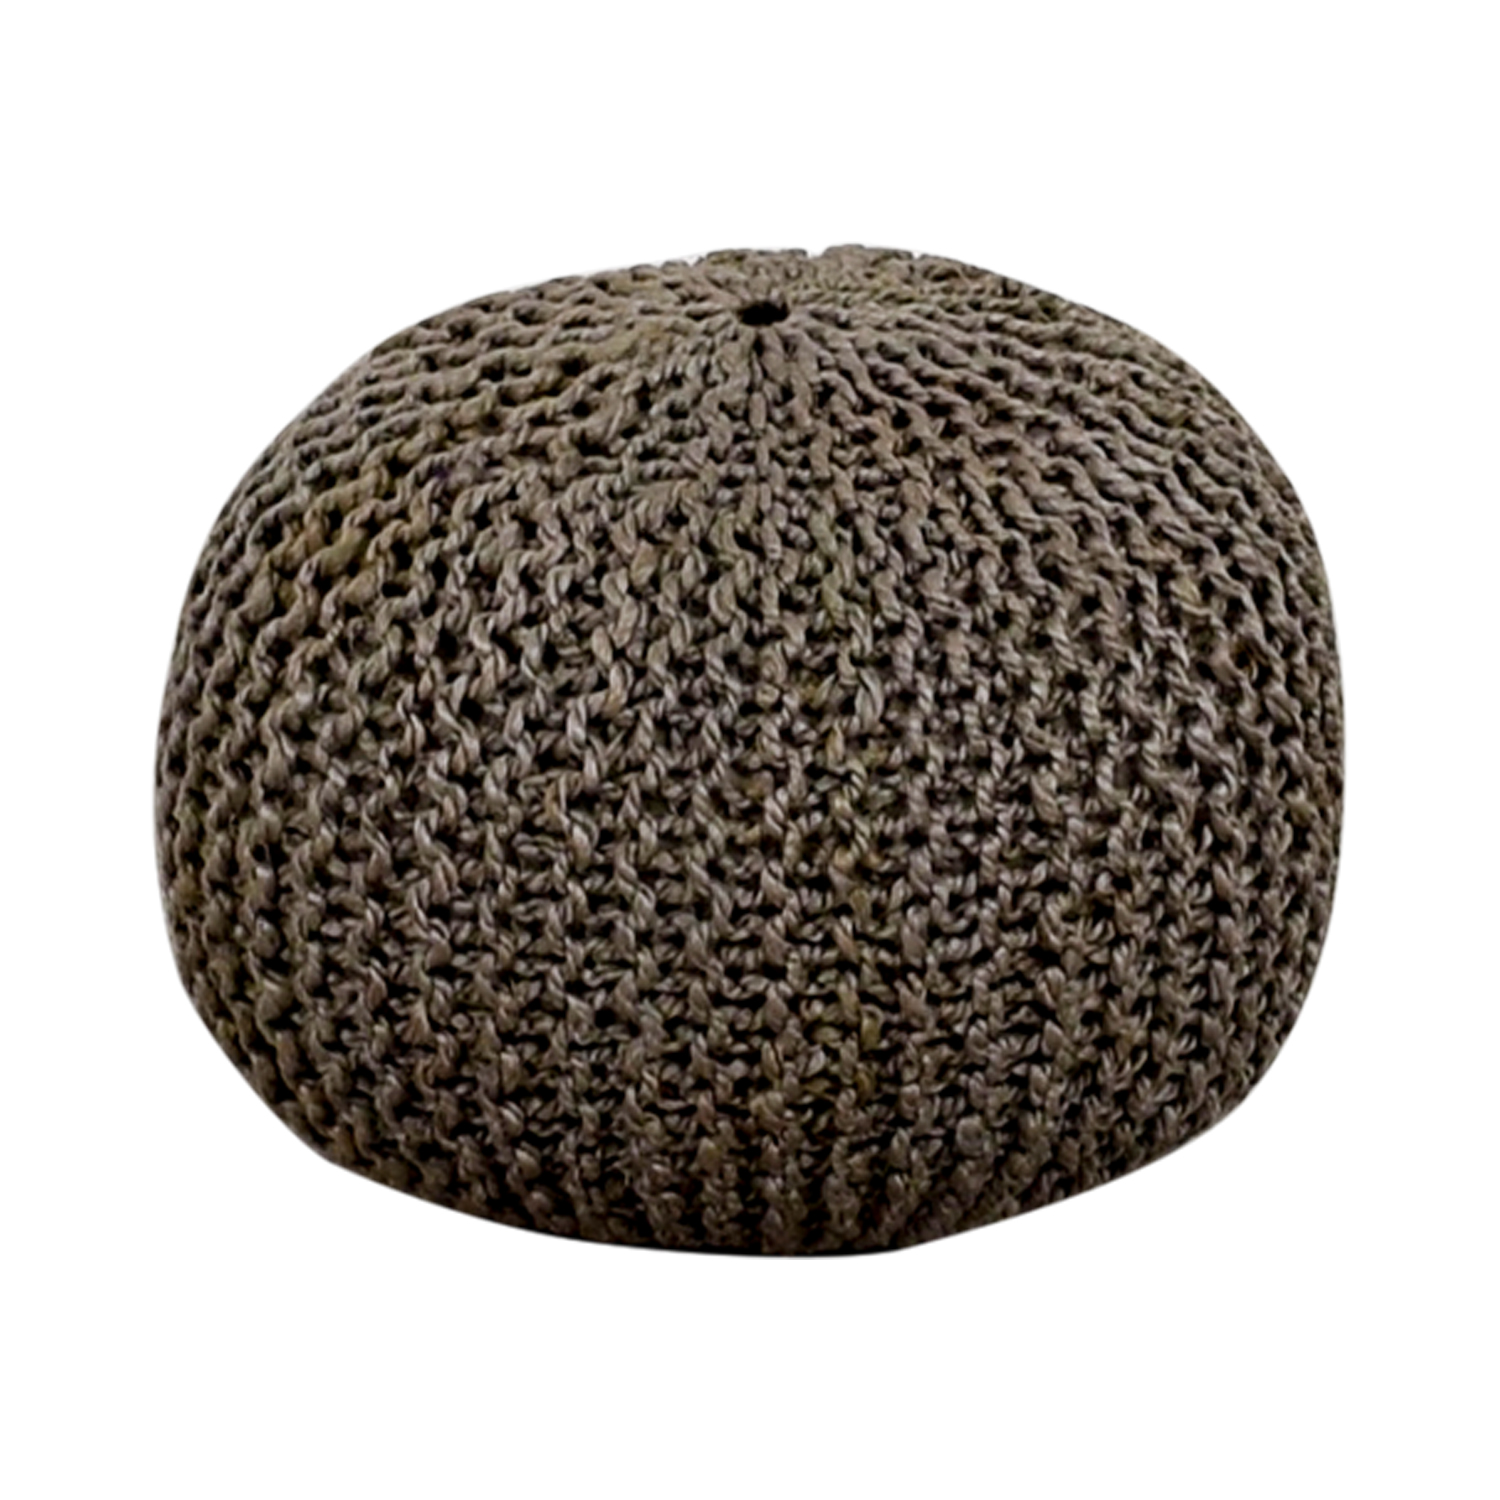 buy Beachcrest Pouf Gray Round Ottoman Beachcrest Pouf Chairs